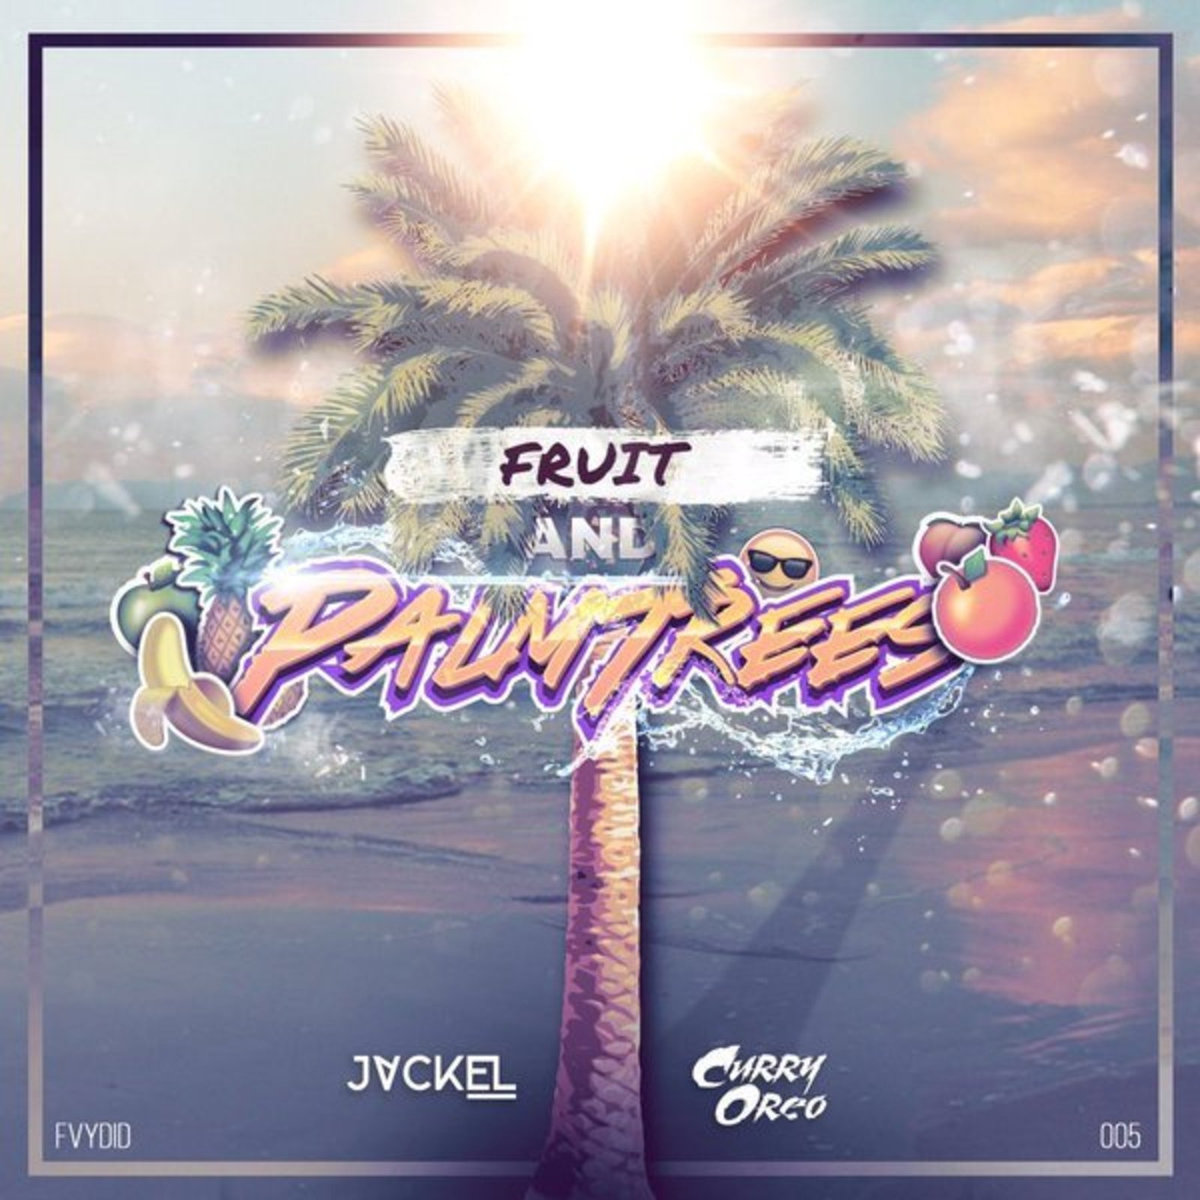 JackEL & Curry Oreo - Fruit and PalmTrees @ 'Fruit and PalmTrees' album (edm, electronic)